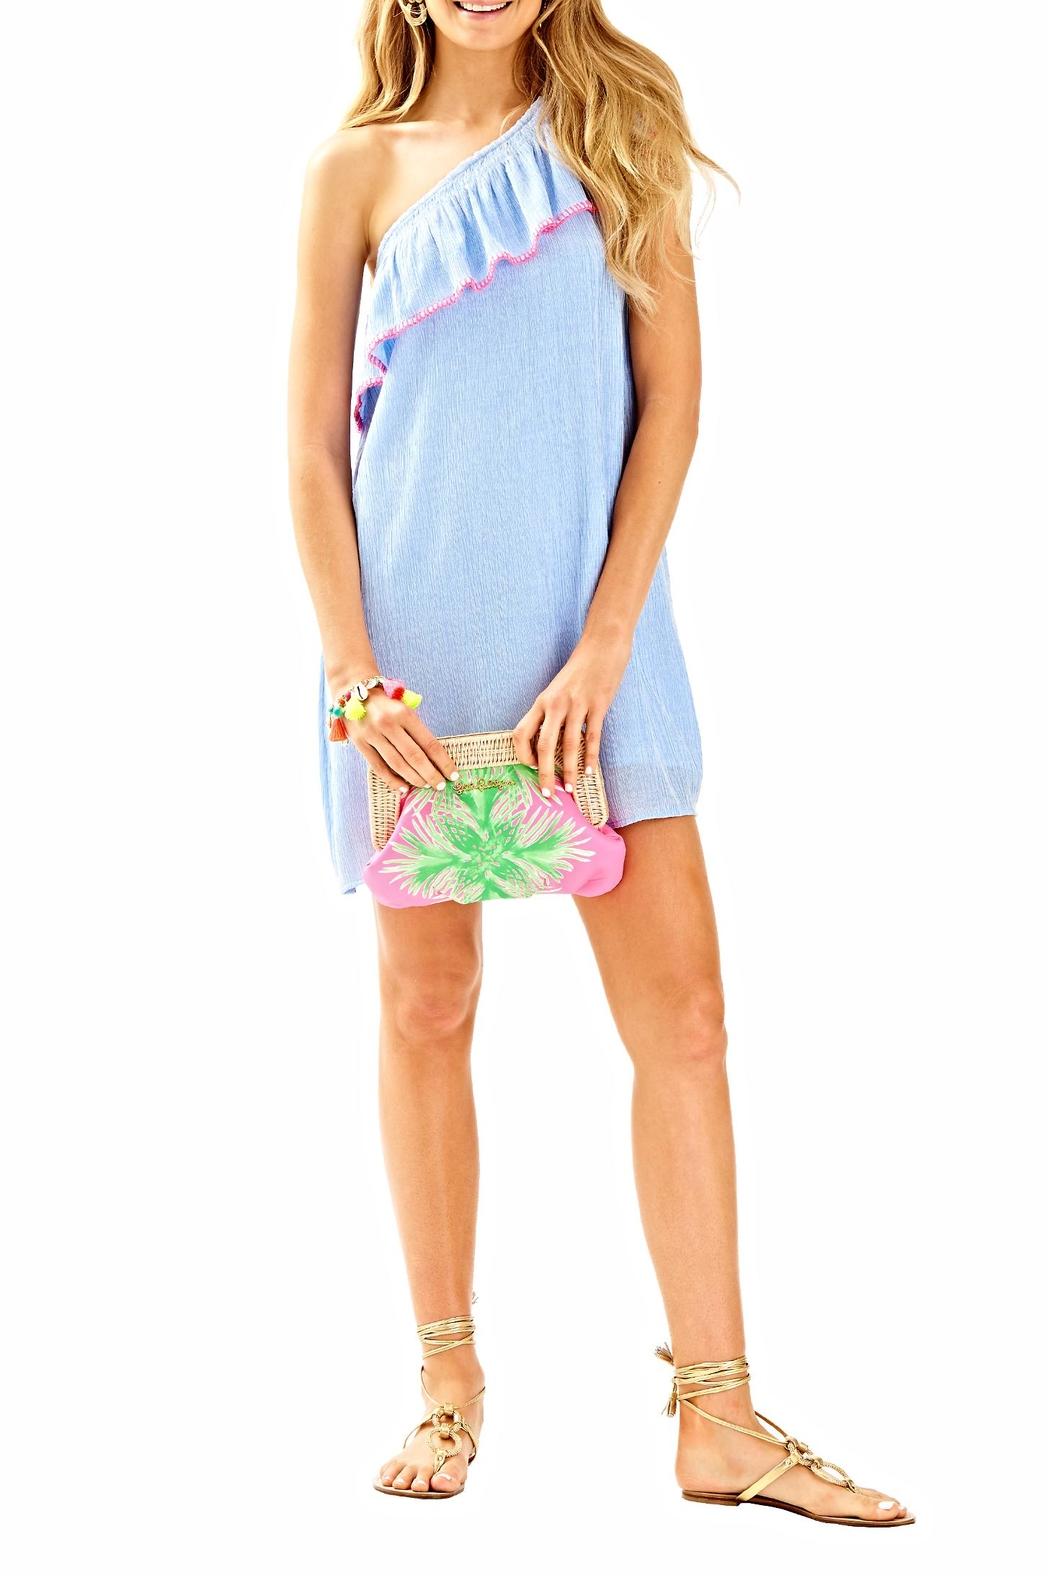 850574ce45c8e8 Lilly Pulitzer Emmeline Dress from Sandestin Golf and Beach Resort ...